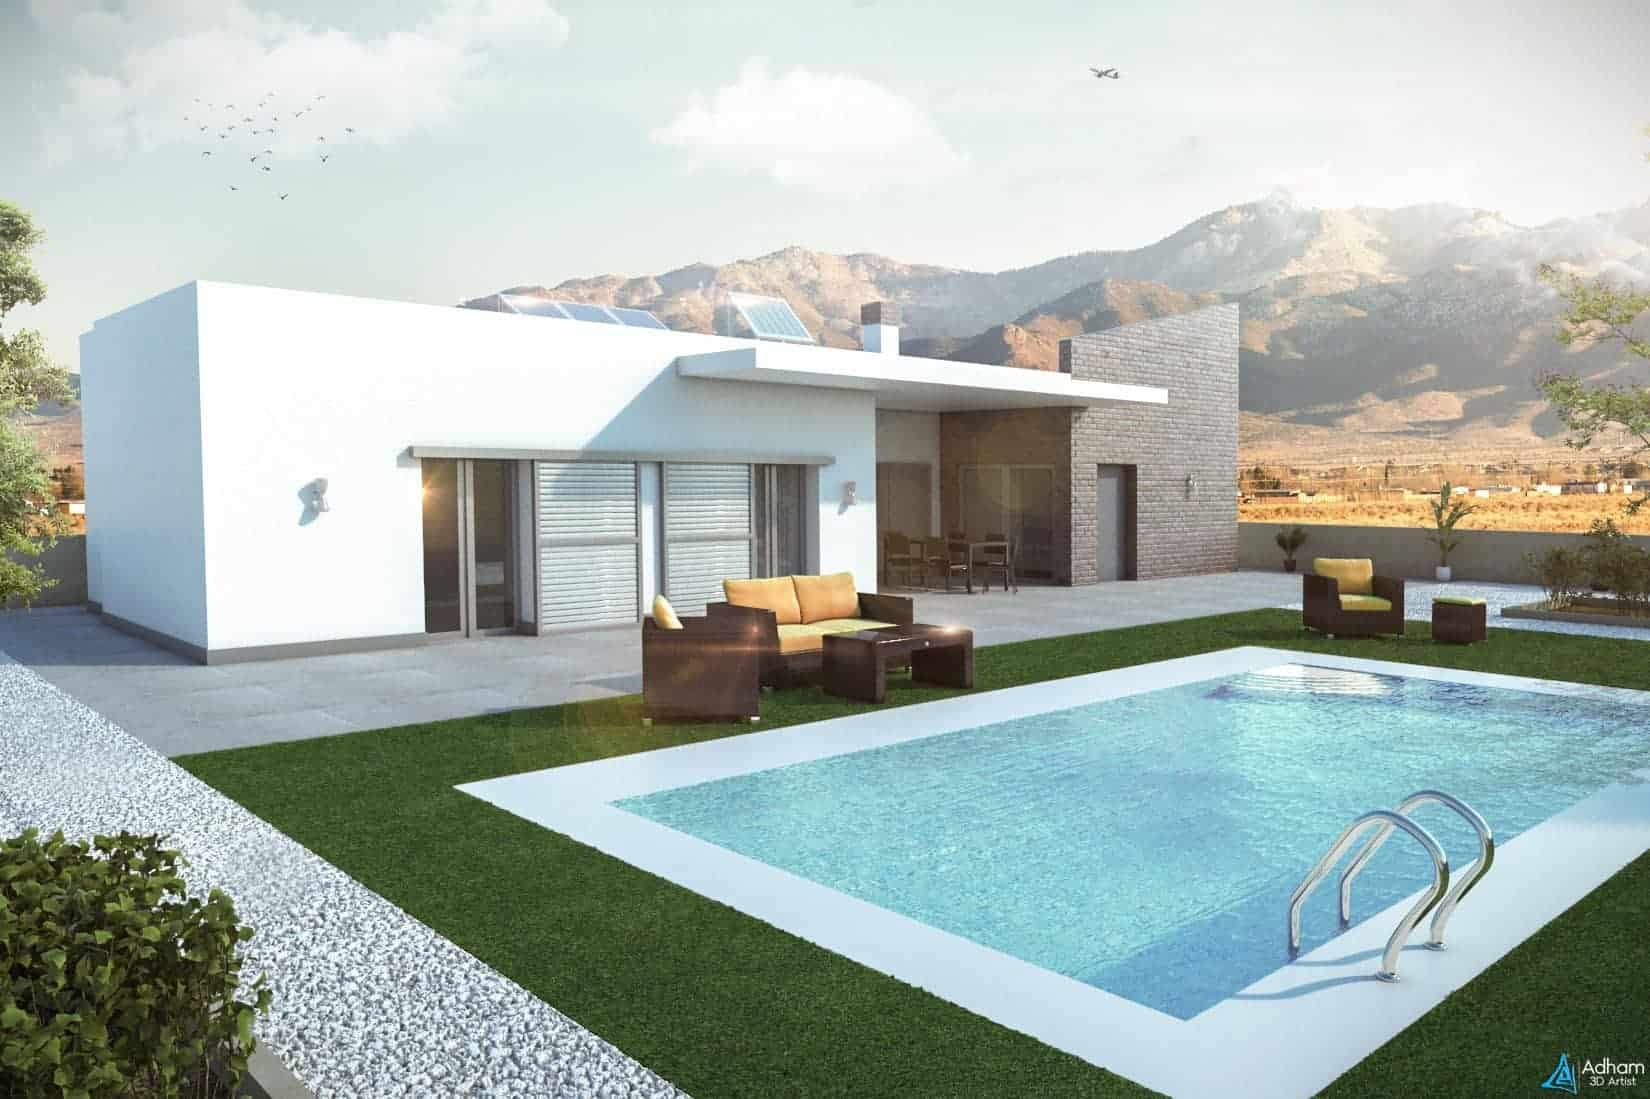 Free exterior 3d scene adham mohamed for 3d pool design online free